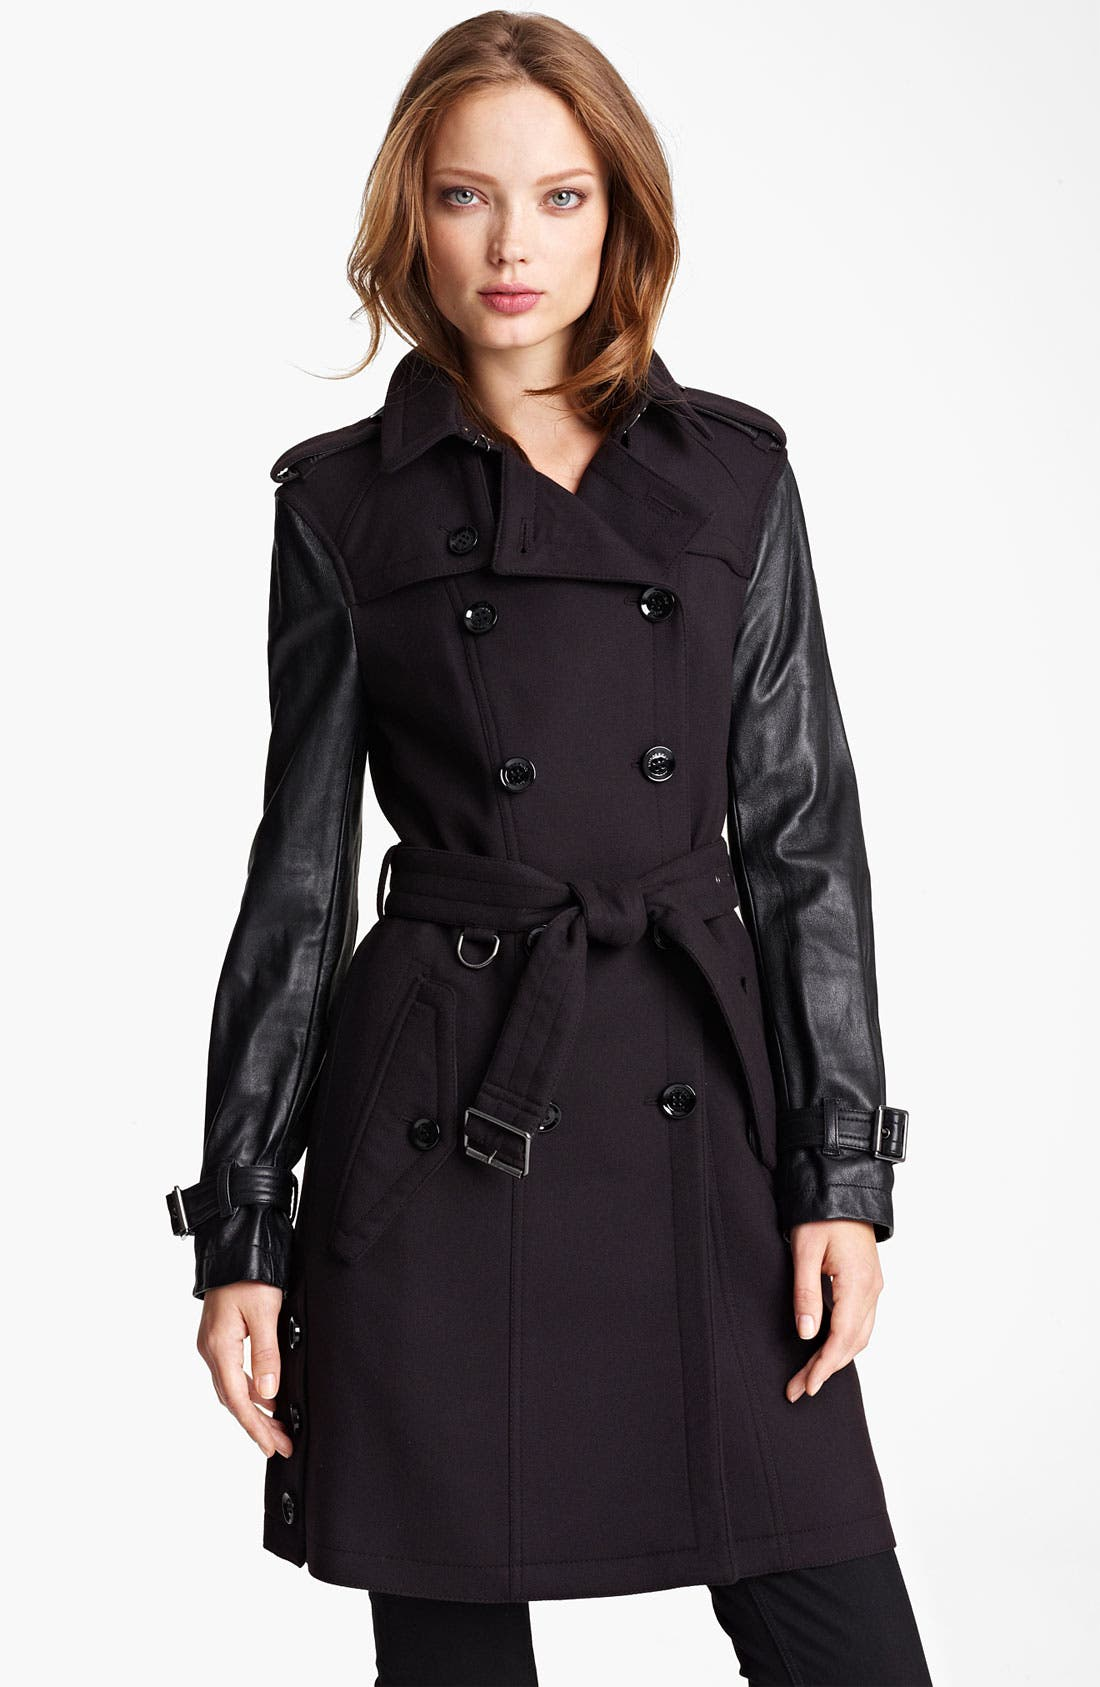 'Yarrowfield' Lambskin Sleeve Trench,                             Main thumbnail 1, color,                             001